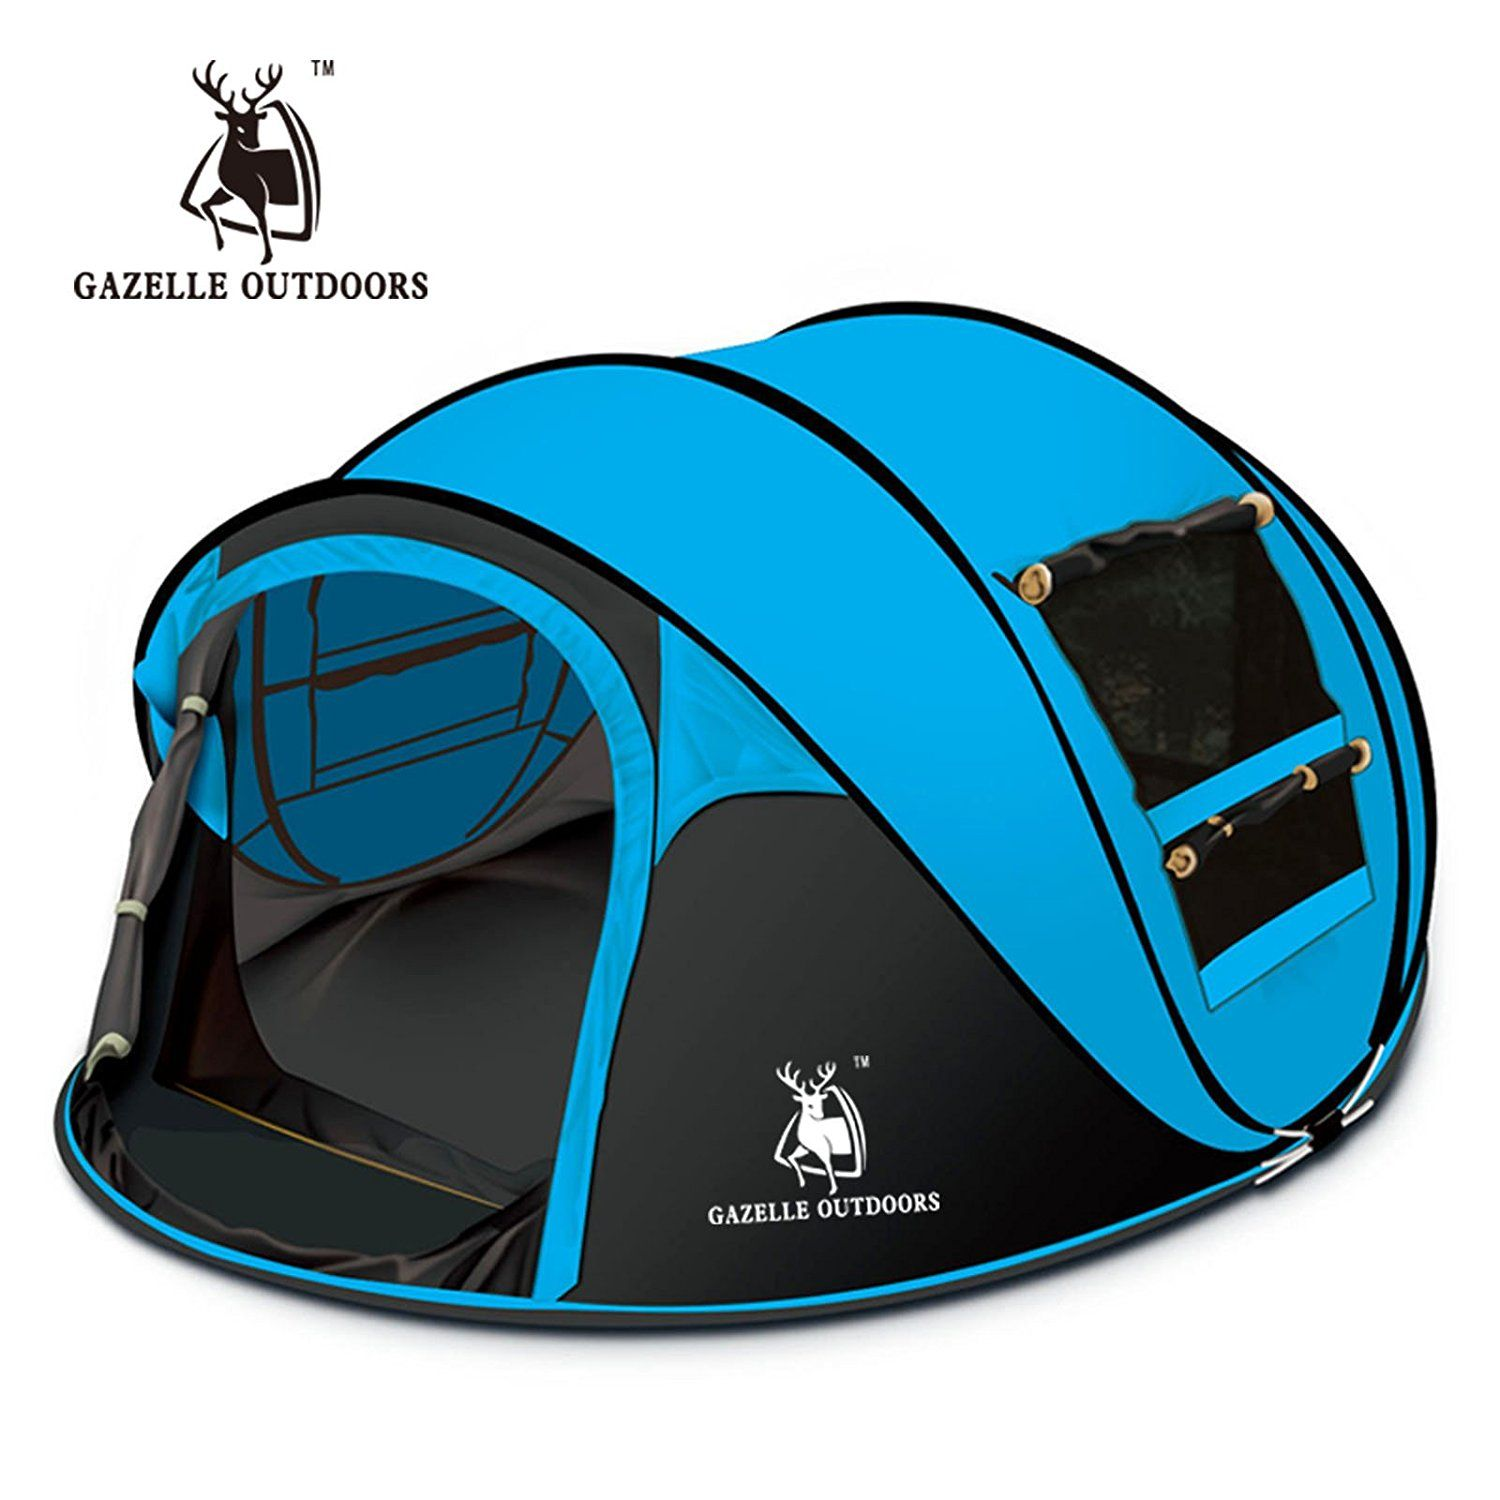 STAR HOME Seconds Pop-up Quick-opening Tents Person - Blue- * Tried it!  sc 1 st  Pinterest & Gazelle Outdoors Camping Hiking Large Instant Pop Up Tent - Double ...